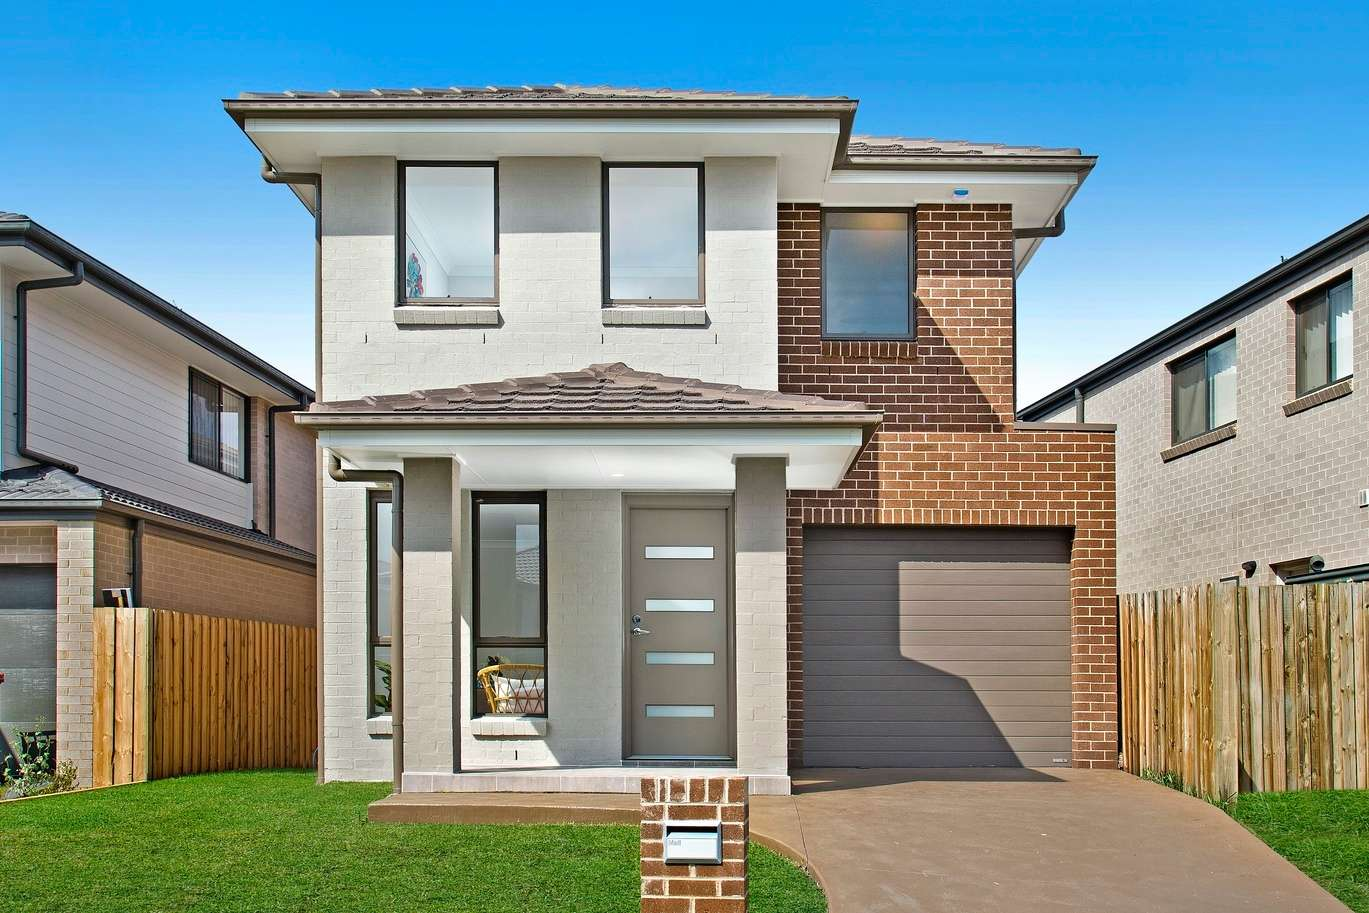 Main view of Homely house listing, 17 Belford Street, Schofields, NSW 2762